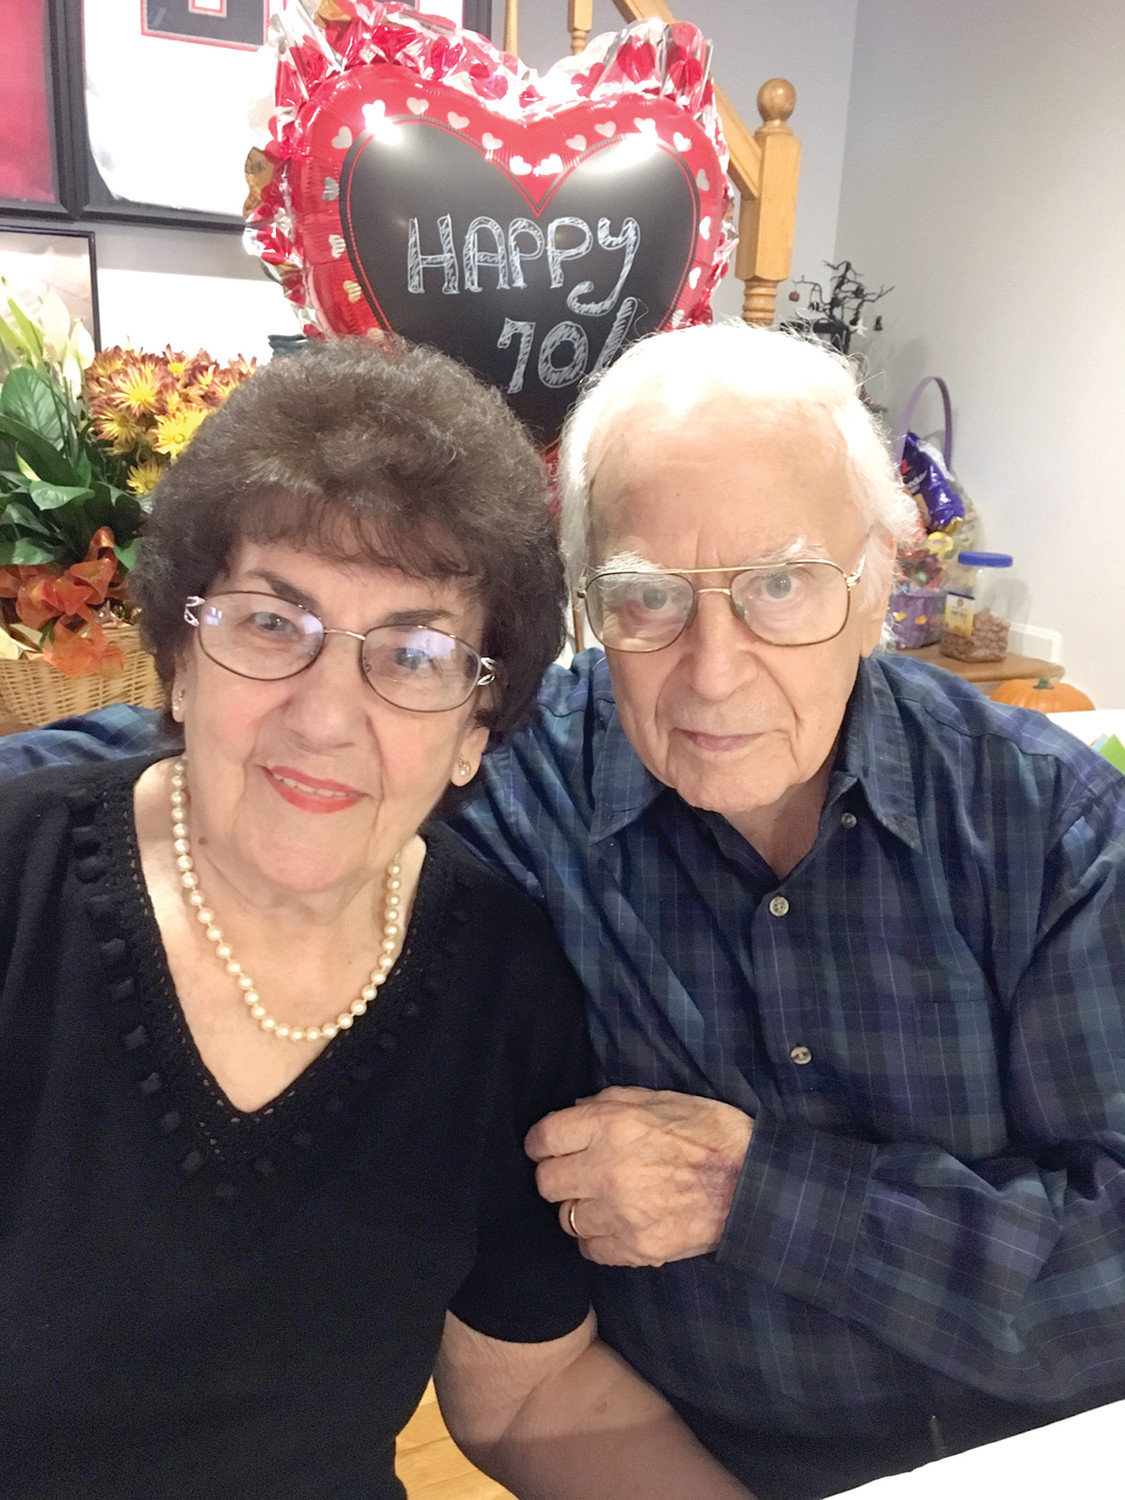 Edward (Eddie) Pannone, Sr., and Eleanor Pannone, who have lived in Johnston for the last 45 years, celebrated their platinum anniversary on October 12. The couple, along with their family, celebrated 70 years of wedded bliss at a party held on Monday last week. Eddie, who is a retired tailor and World War II Navy veteran, and Eleanor, who is a retired nursing assistant, have three children, five grandchildren, and a great grandchild who lives in California. We at the Sun Rise are inspired by their dedication to each other and wish them continued happiness as they celebrate their love and life together.